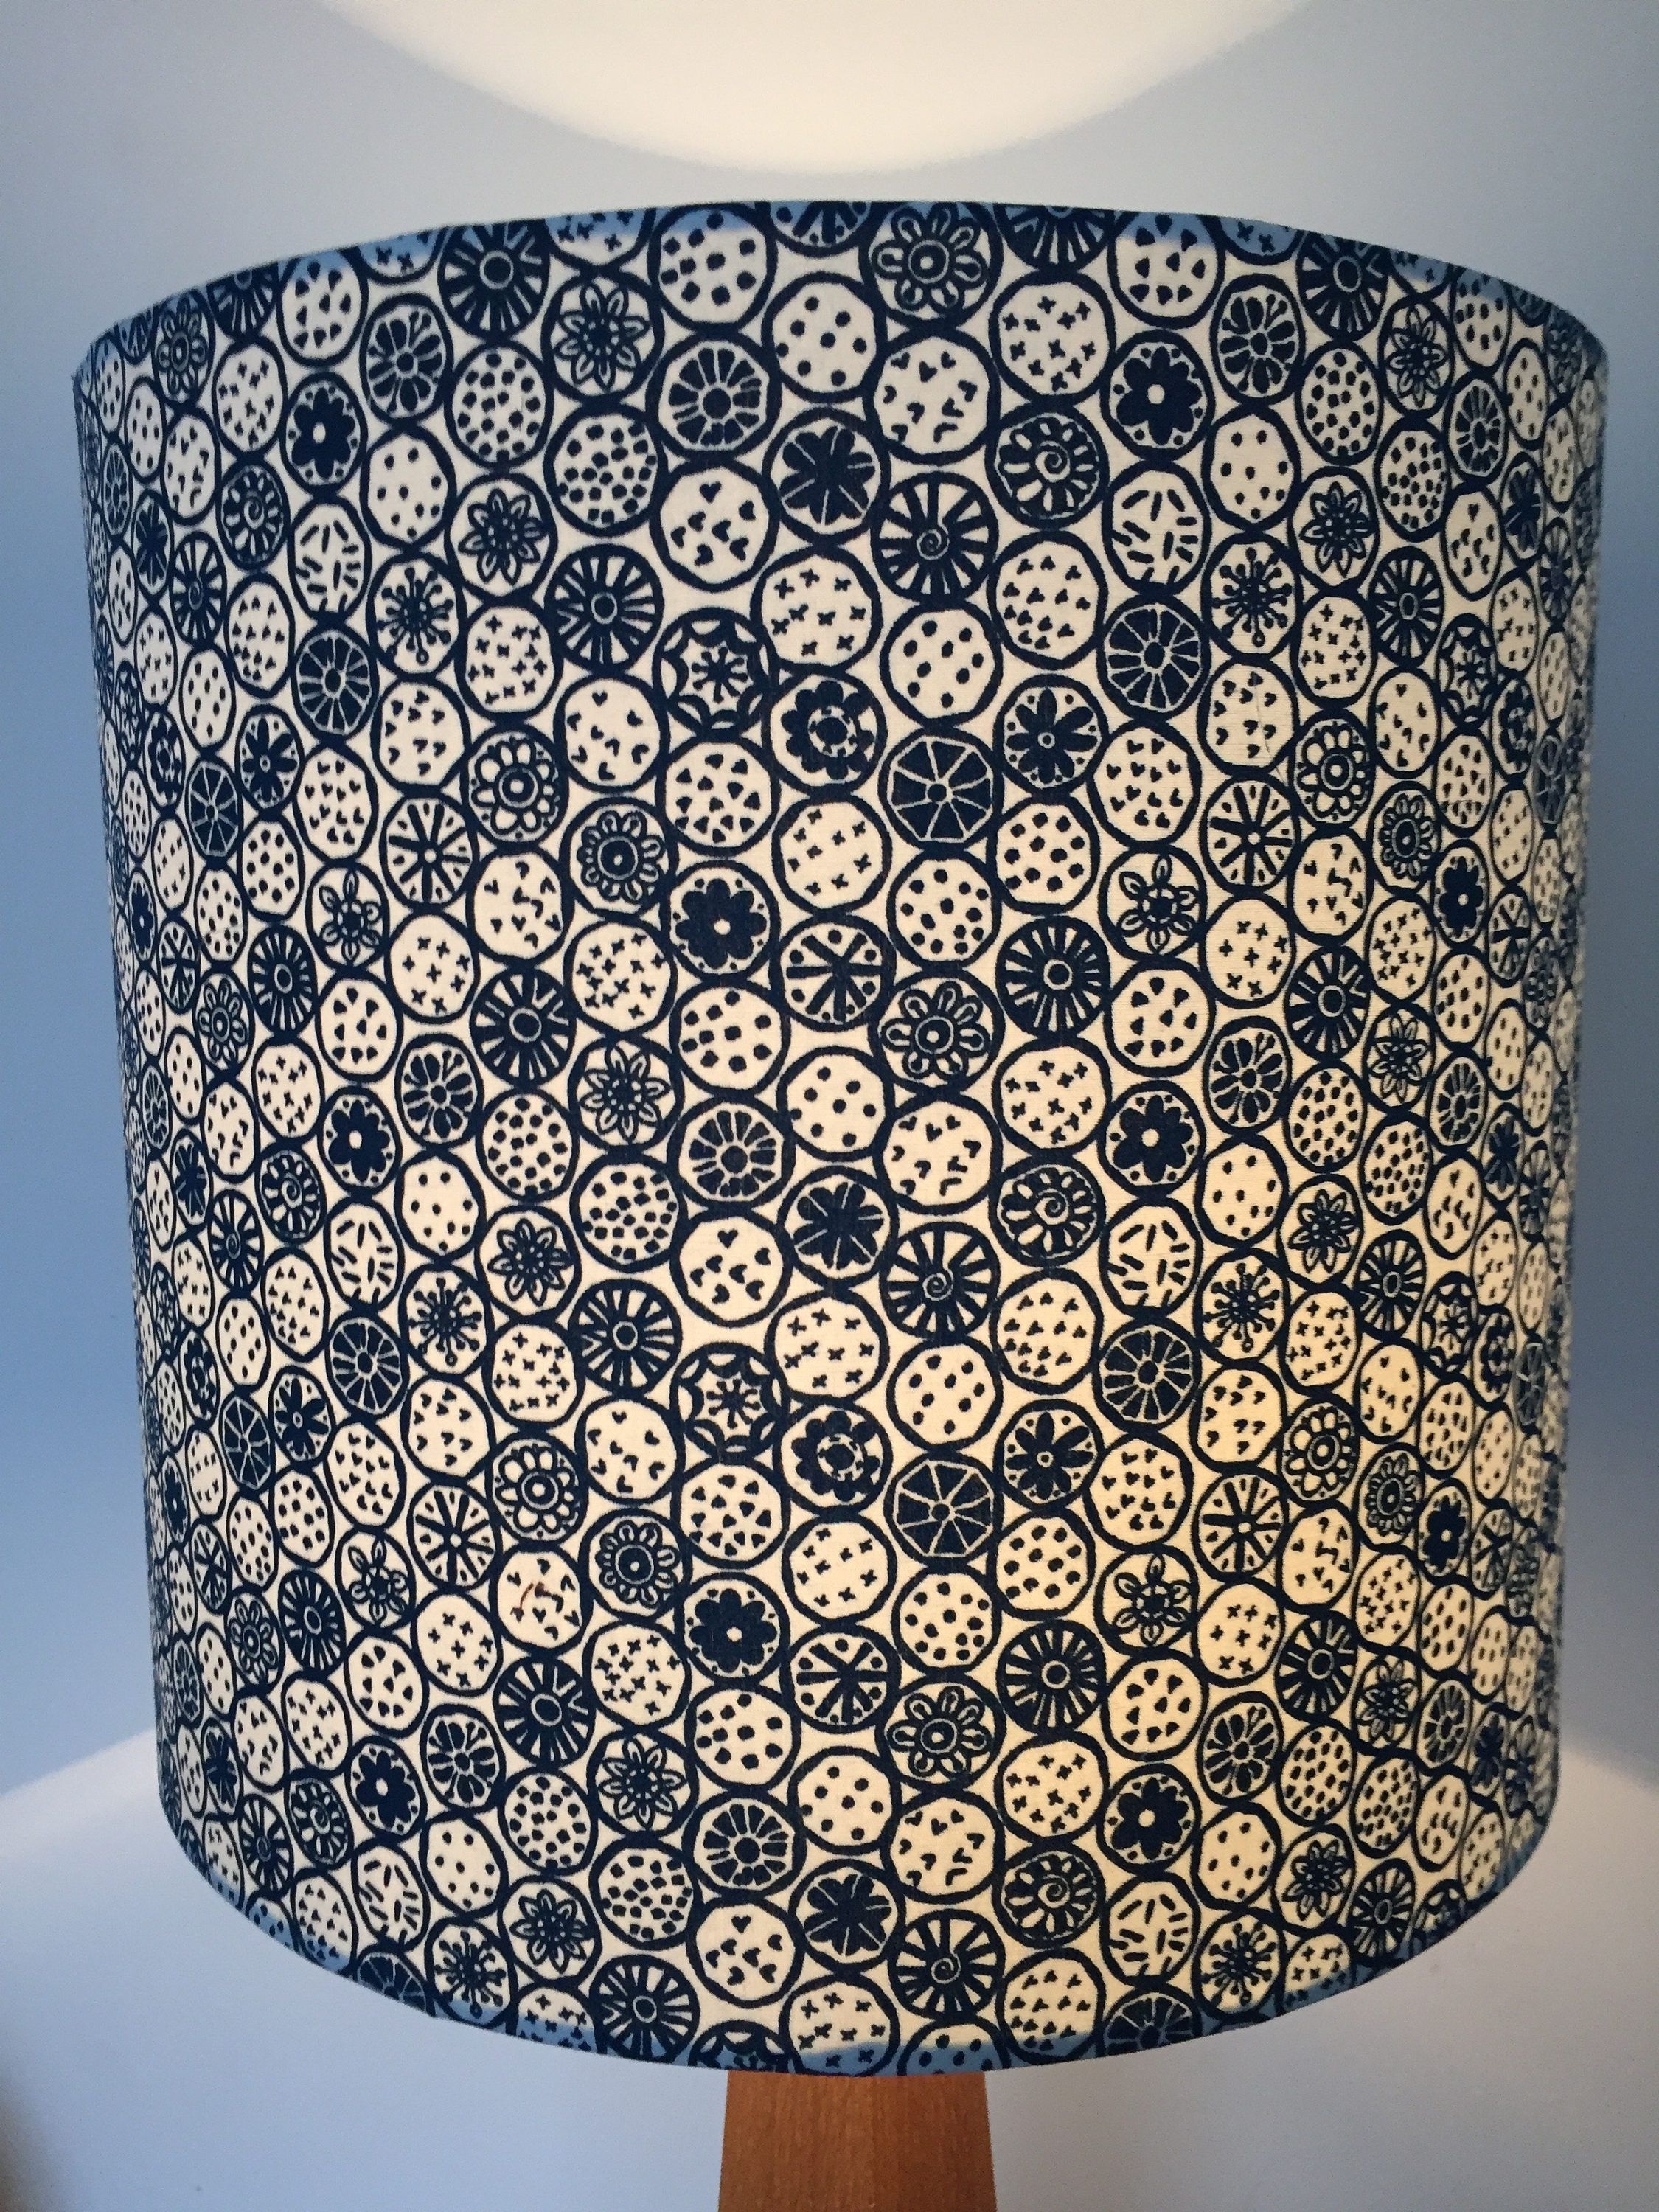 Blue and white cut fruit patterned lampshade fruit pattern lamp blue and white cut fruit patterned lampshade by lightfromshade on etsy aloadofball Choice Image